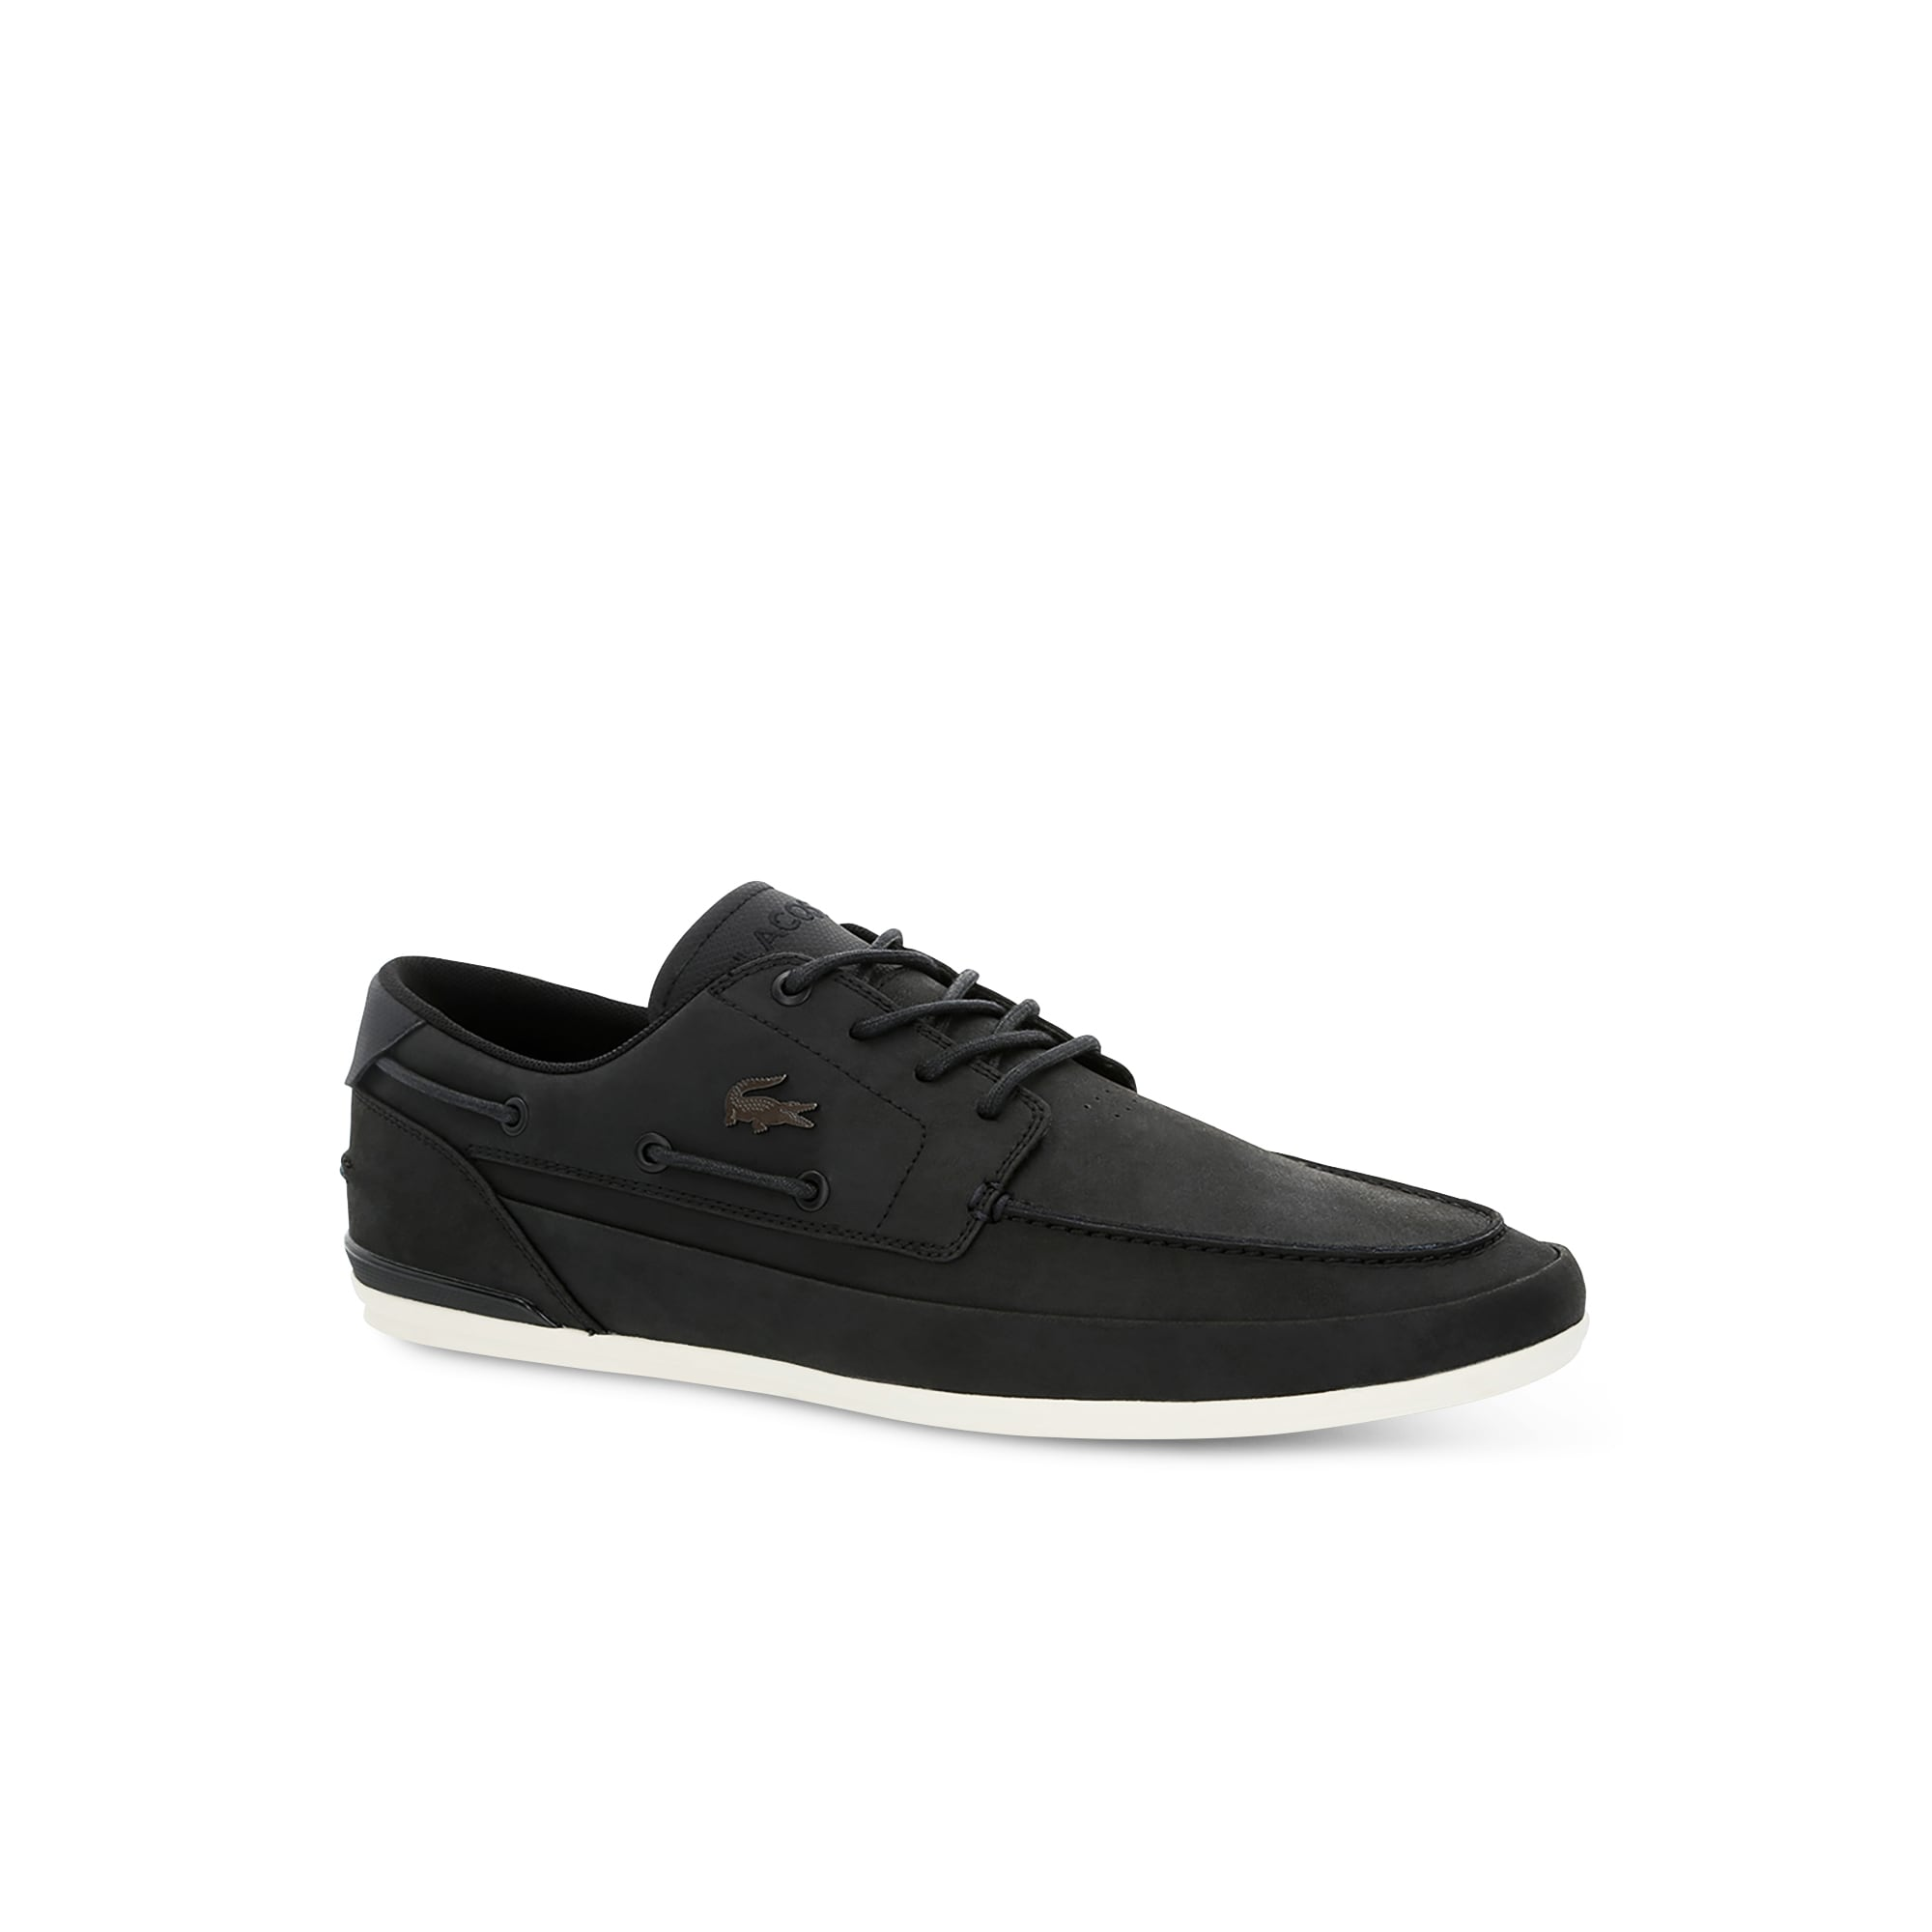 ad991f739 Men s Marina Leather Deck Shoes